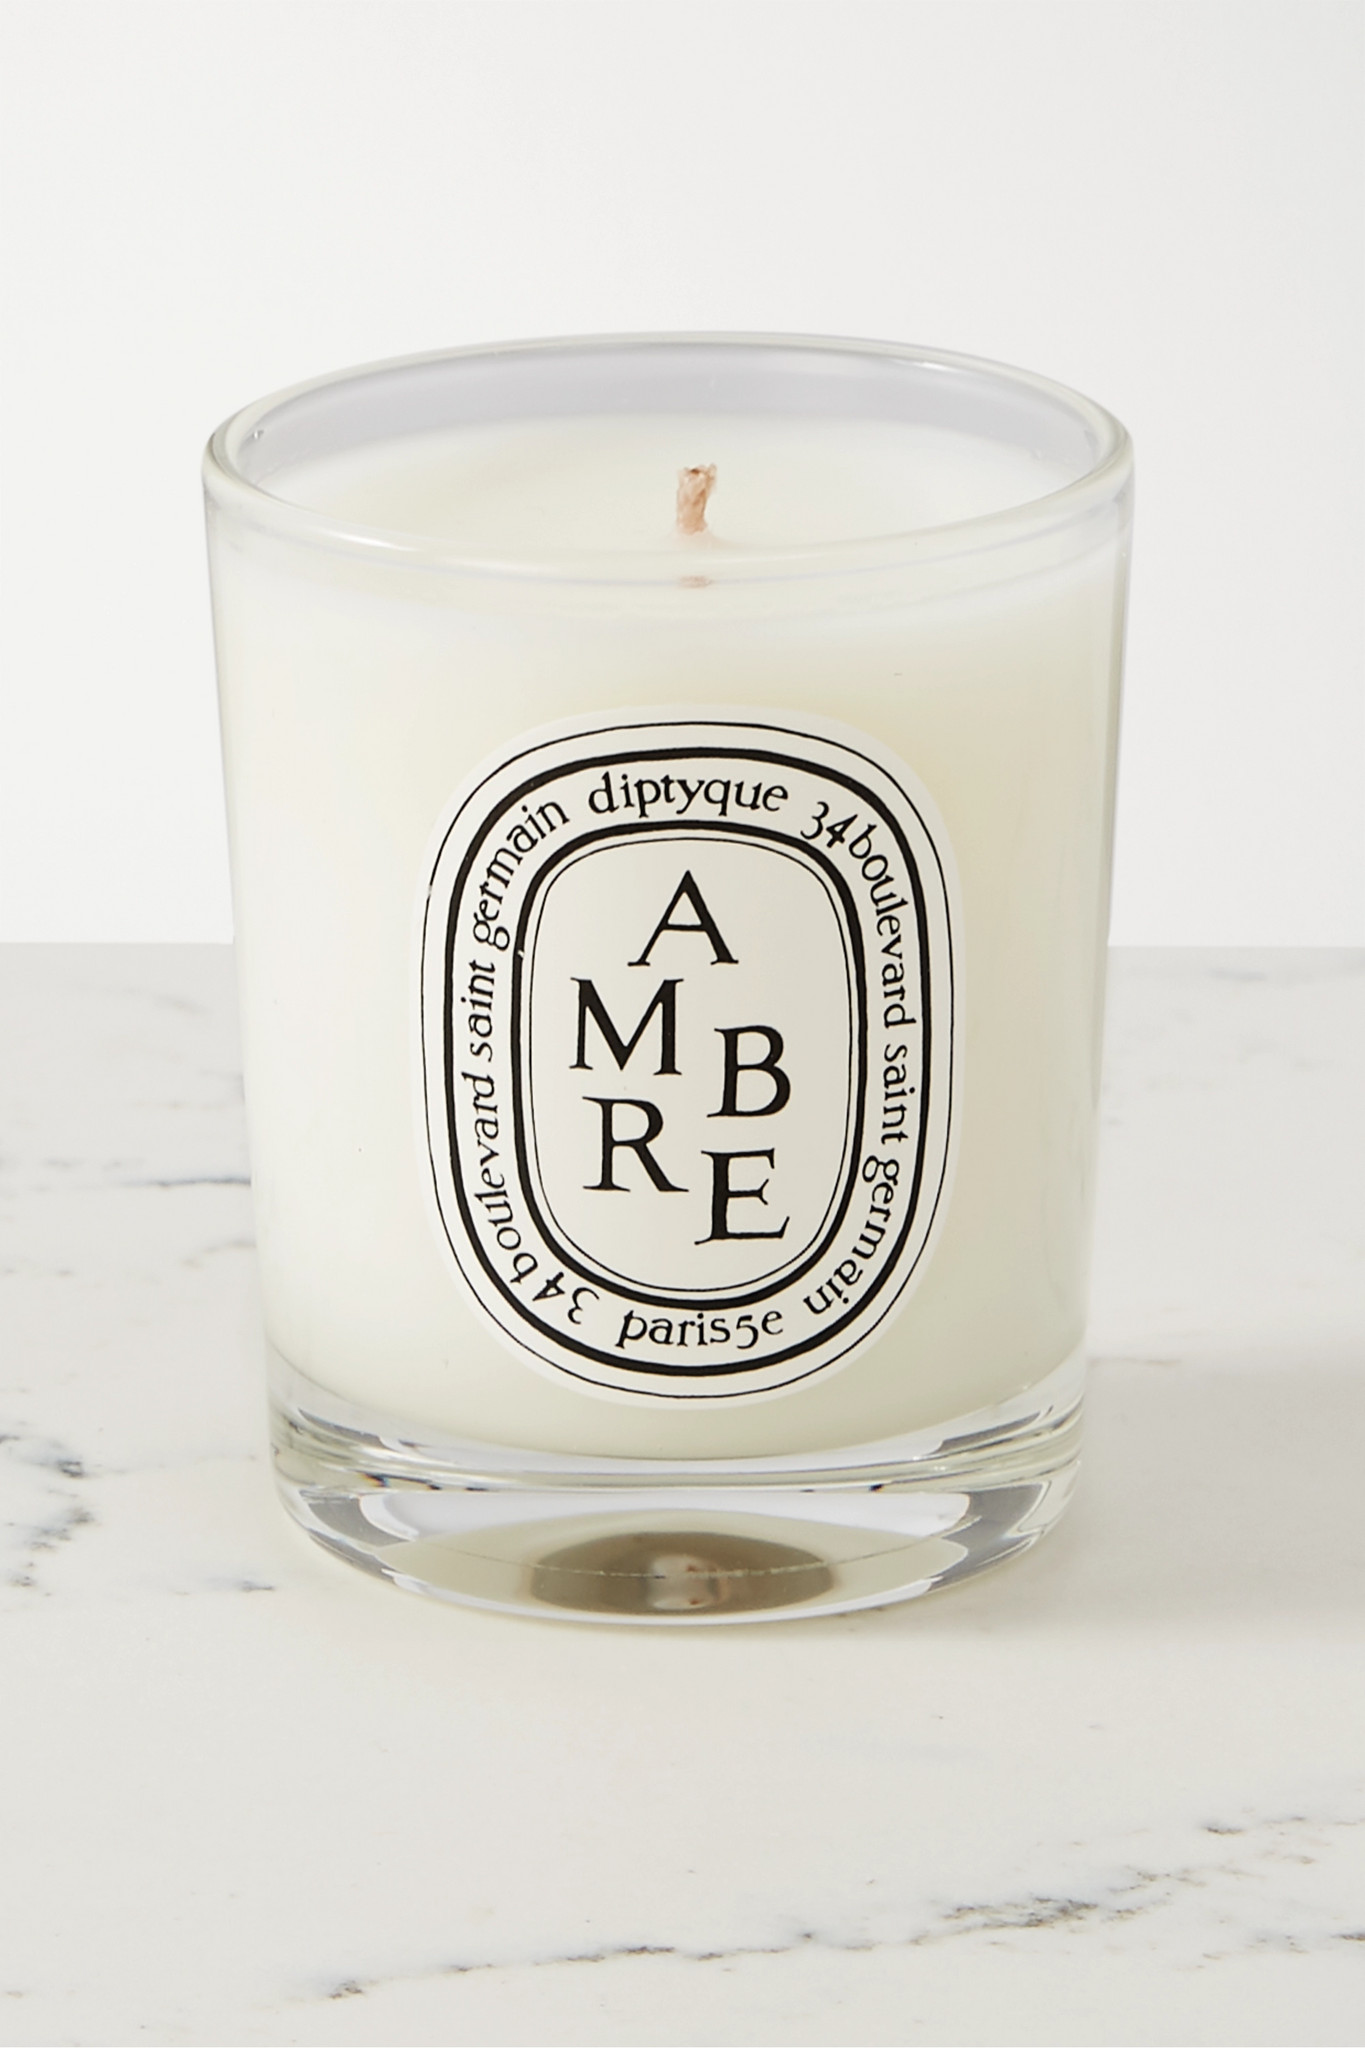 DIPTYQUE - Ambre Scented Candle, 70g - one size